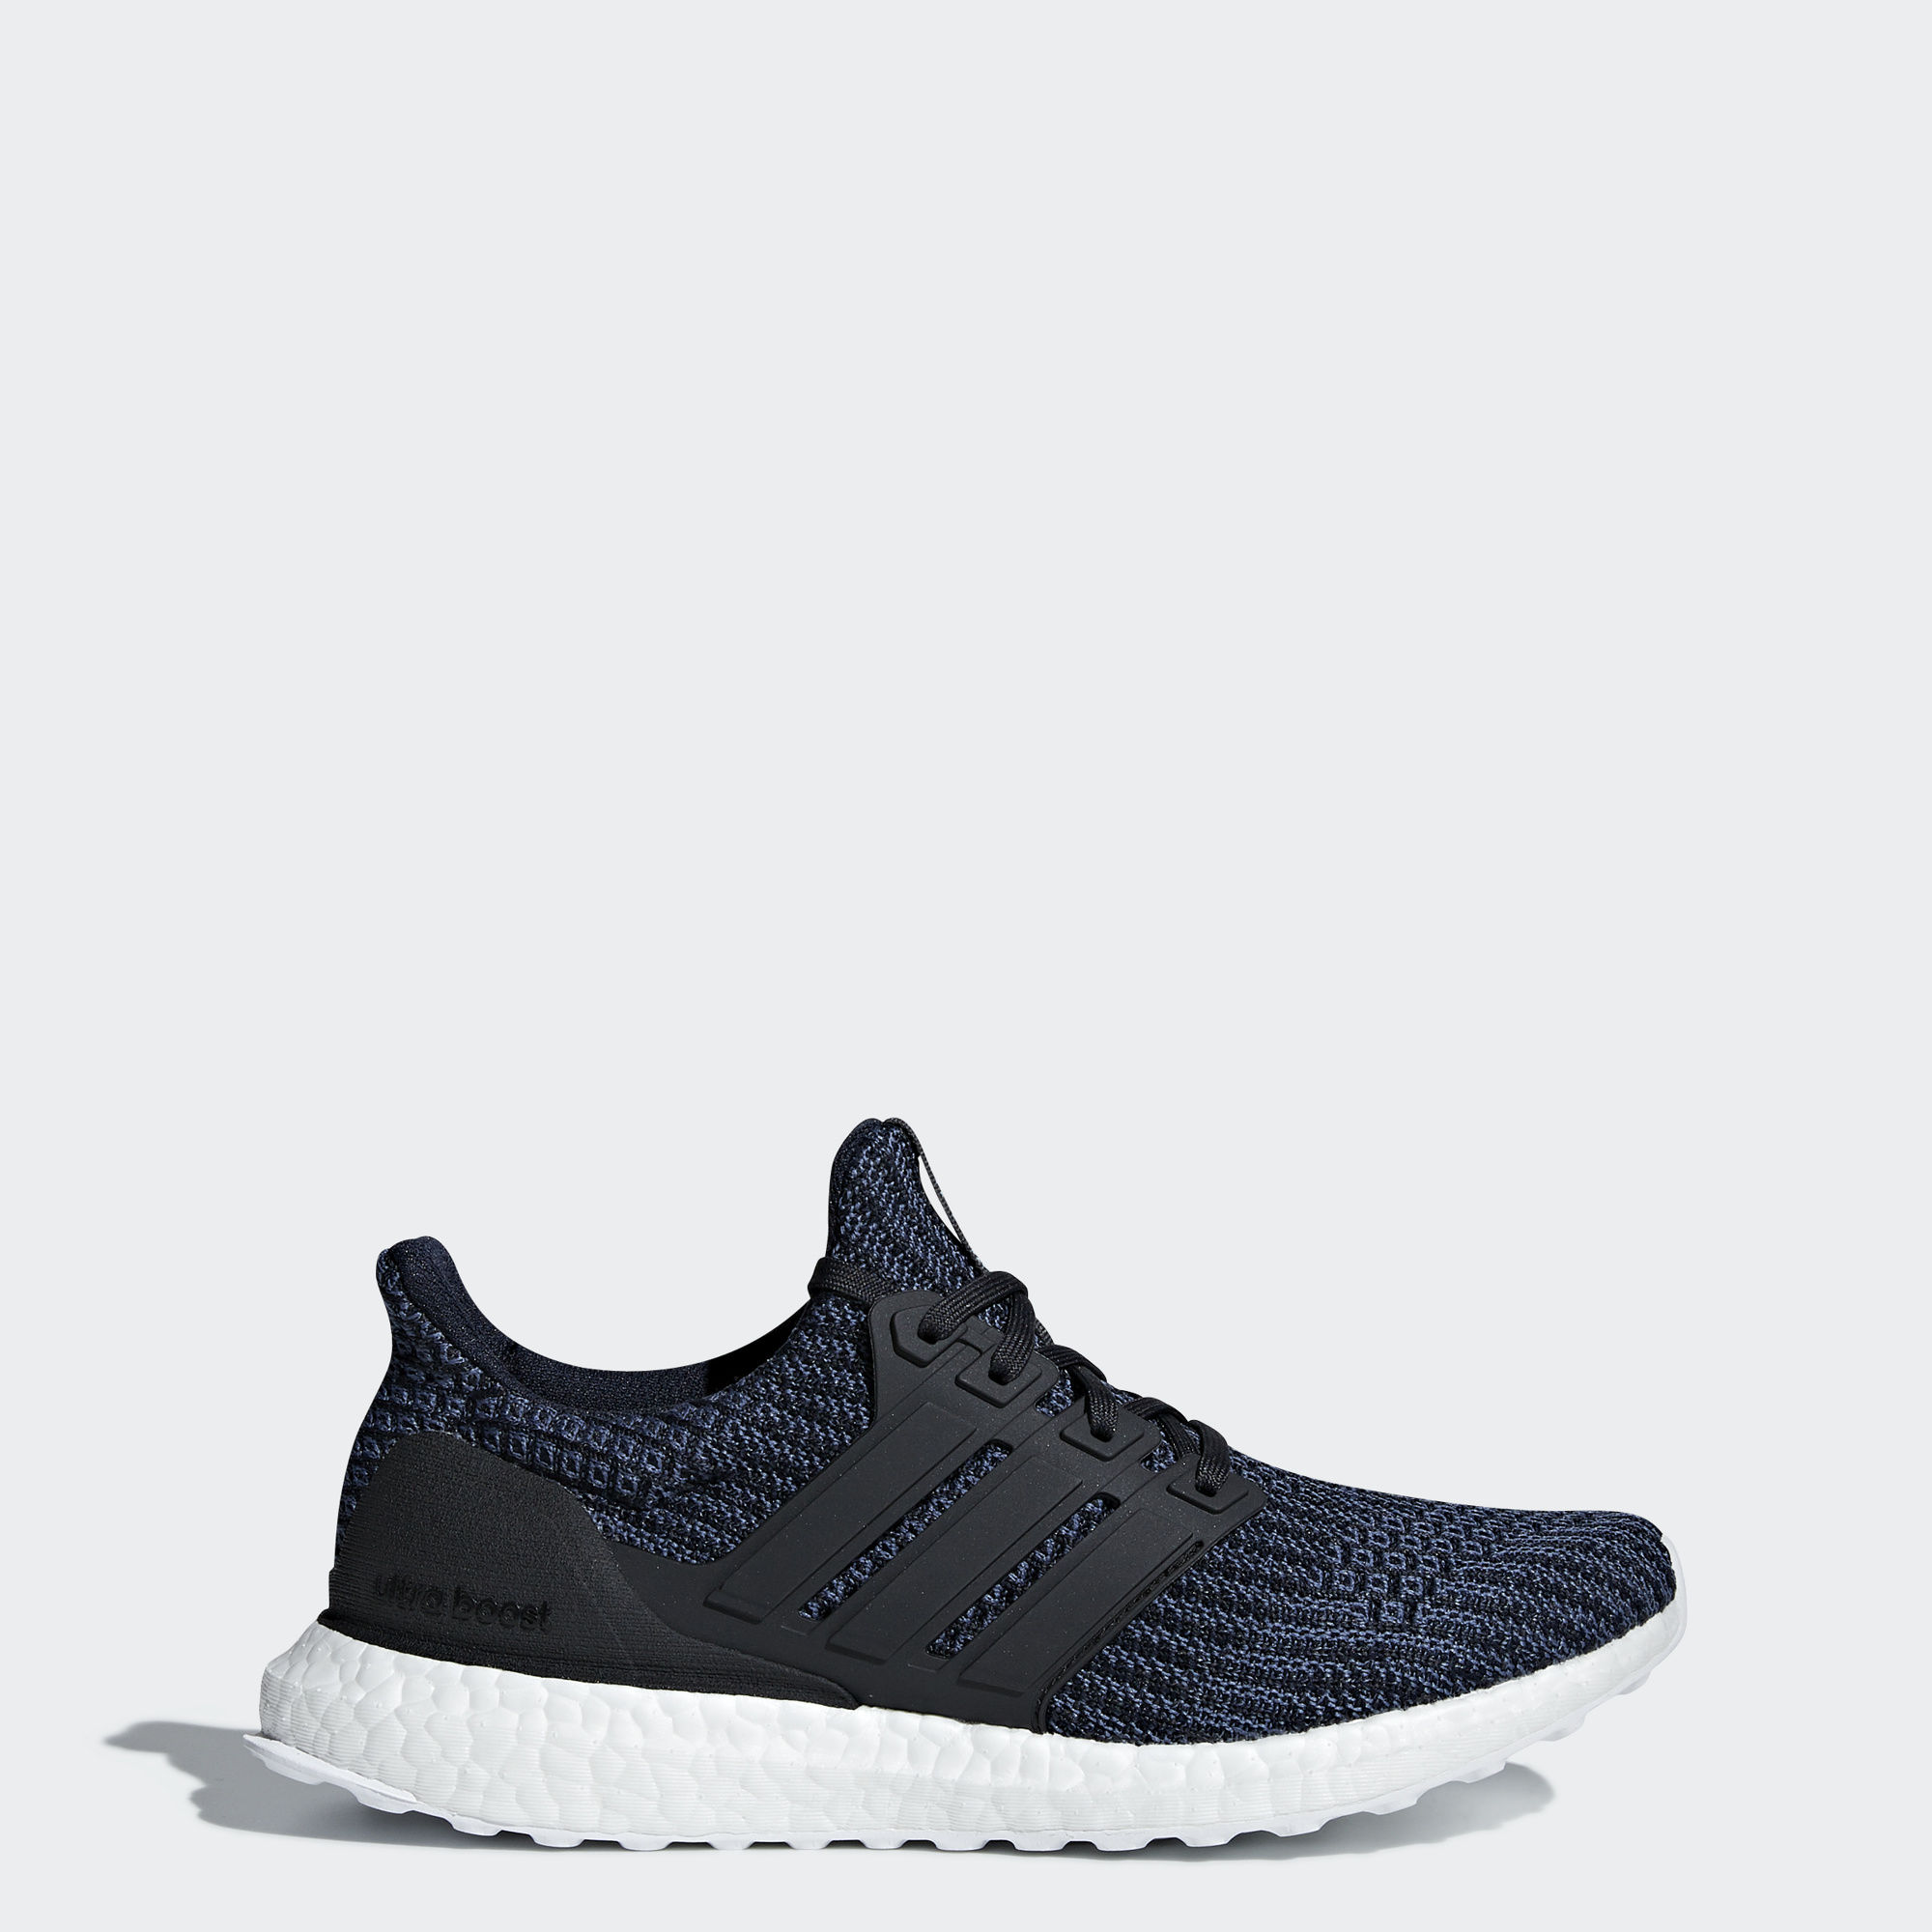 adidas womens shoes